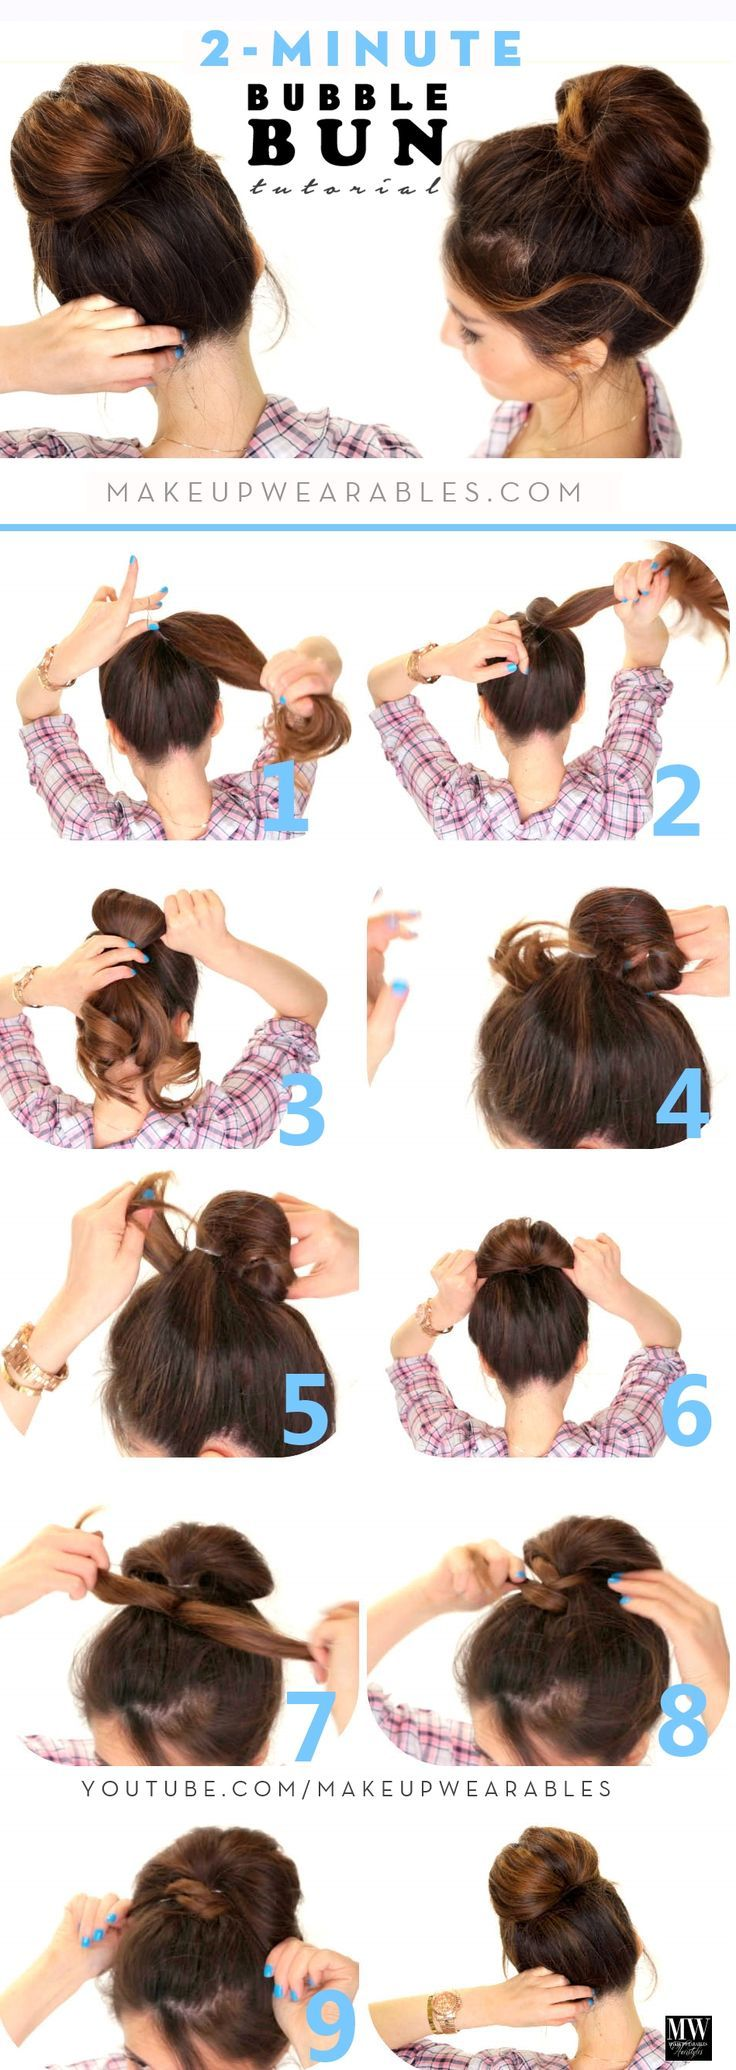 14 Simple Hair Bun Tutorial To Keep You Look Chic In Lazy Days Be Modish Hair Styles Long Hair Styles Hair Bun Tutorial